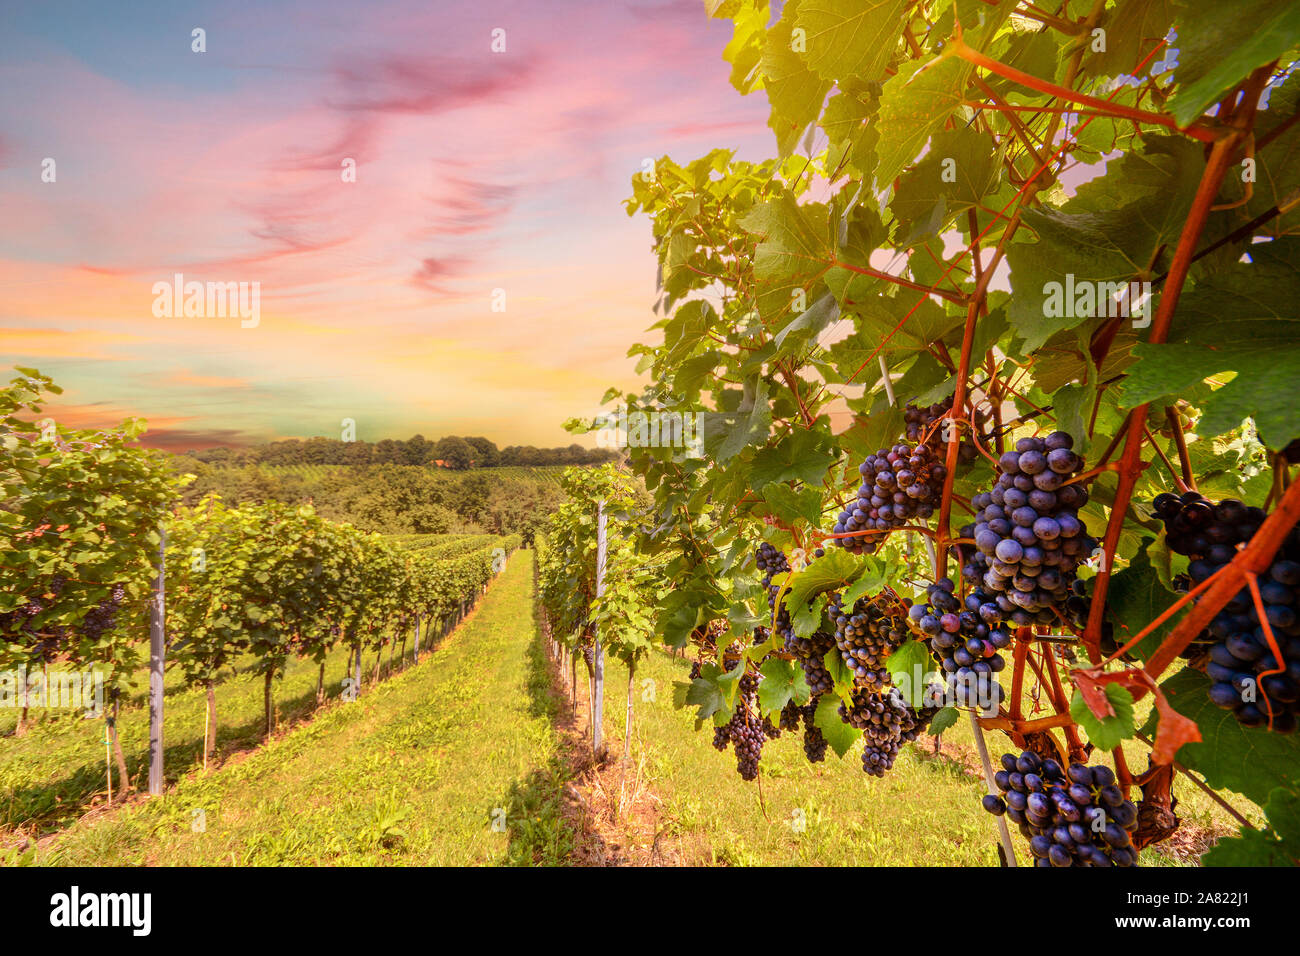 Sunset over vineyards with red wine grapes in late summer Stock Photo